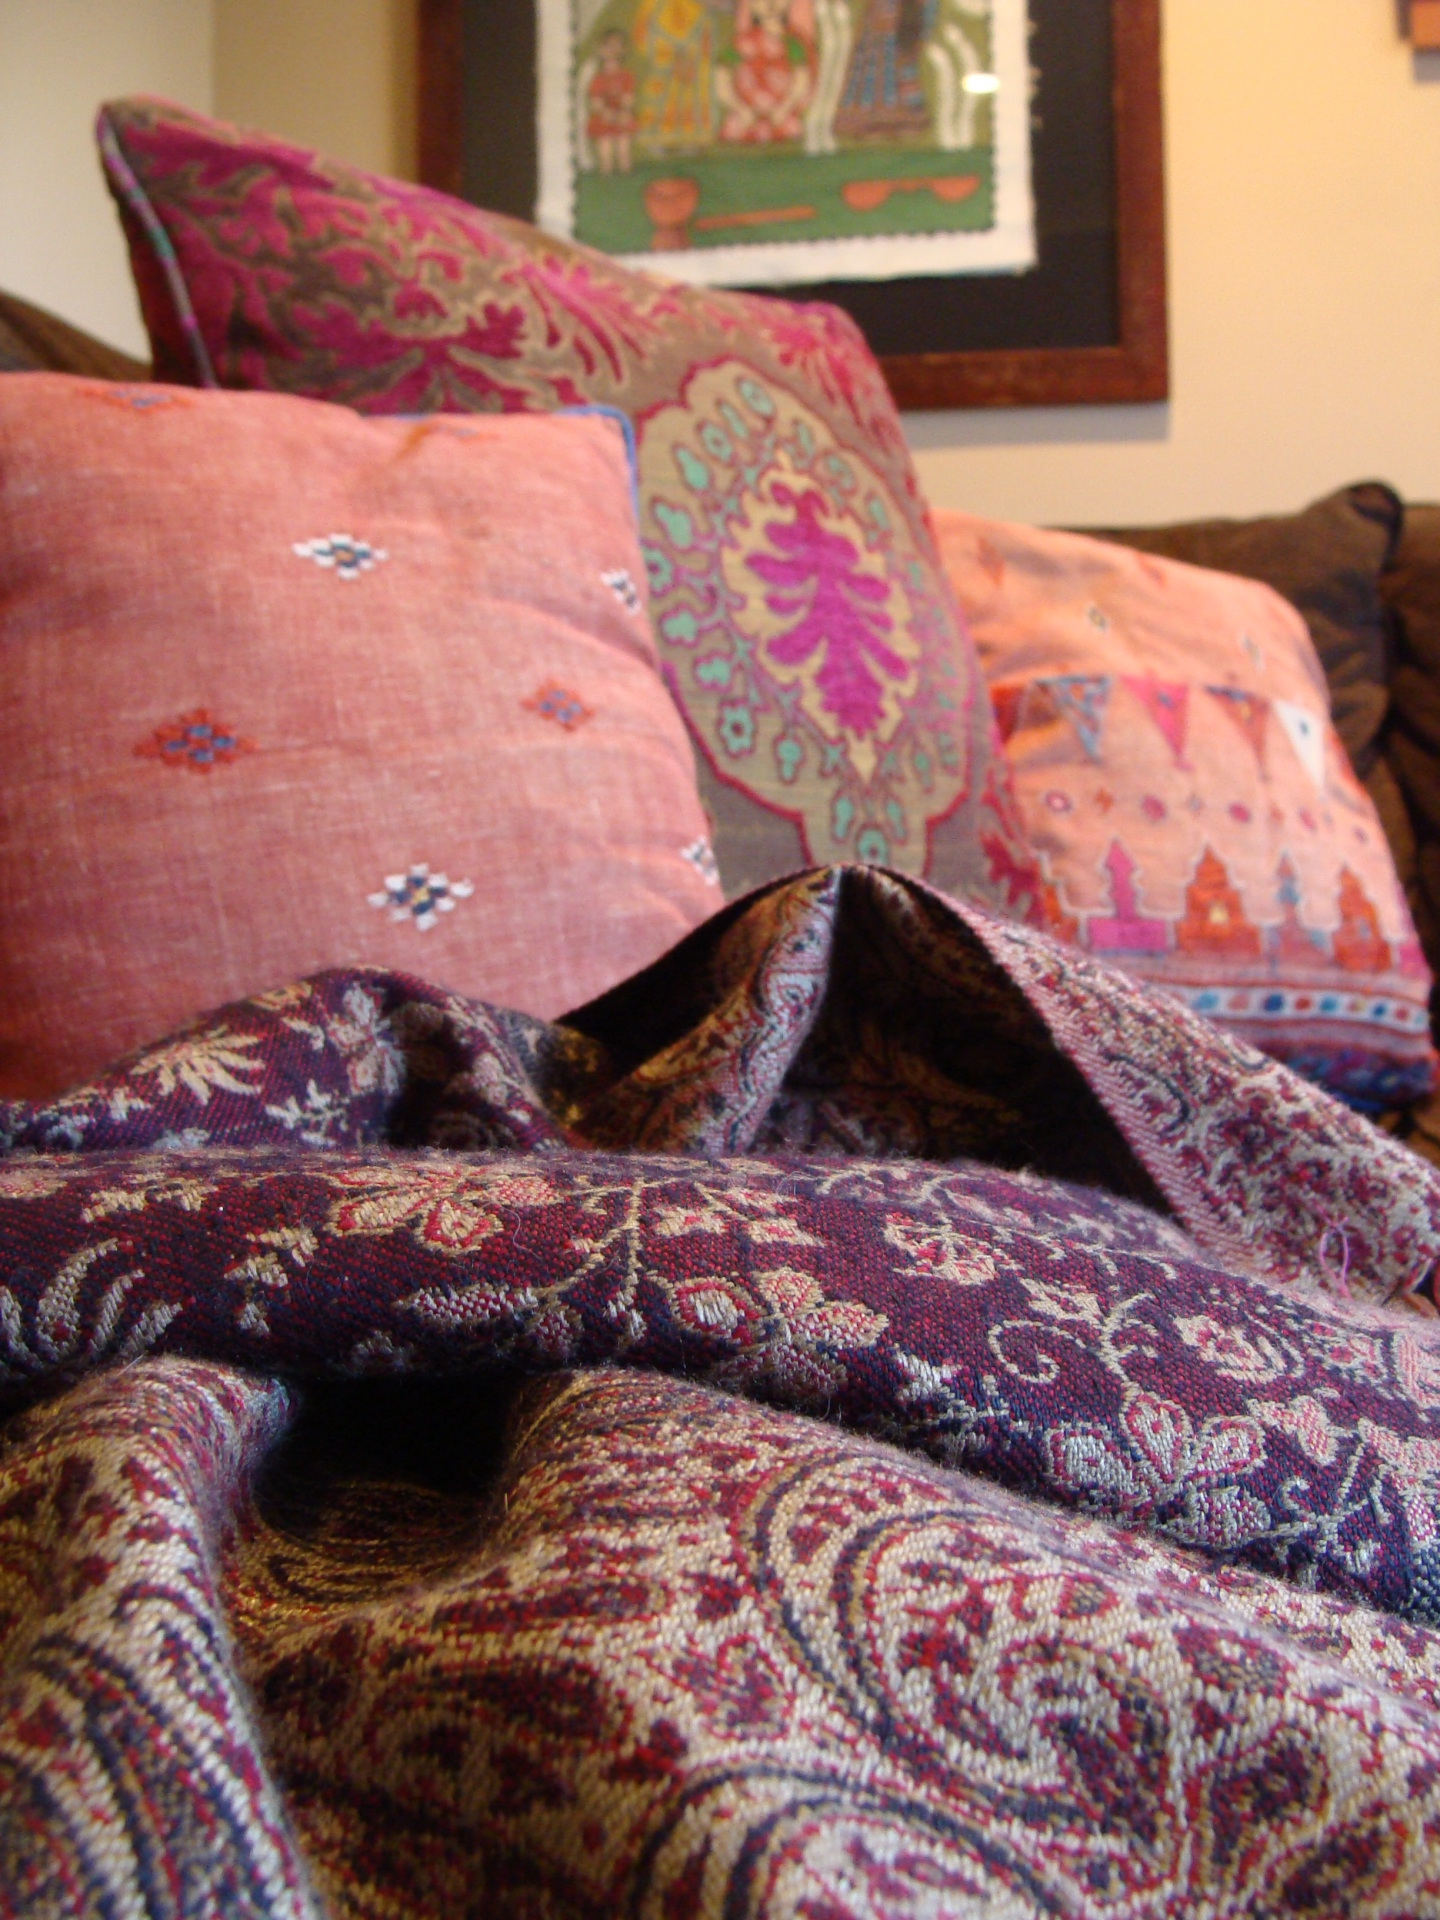 Fiorito Interior Design, interior design, remodel, television room, sectional, pillows, throw, ethnic, eclectic